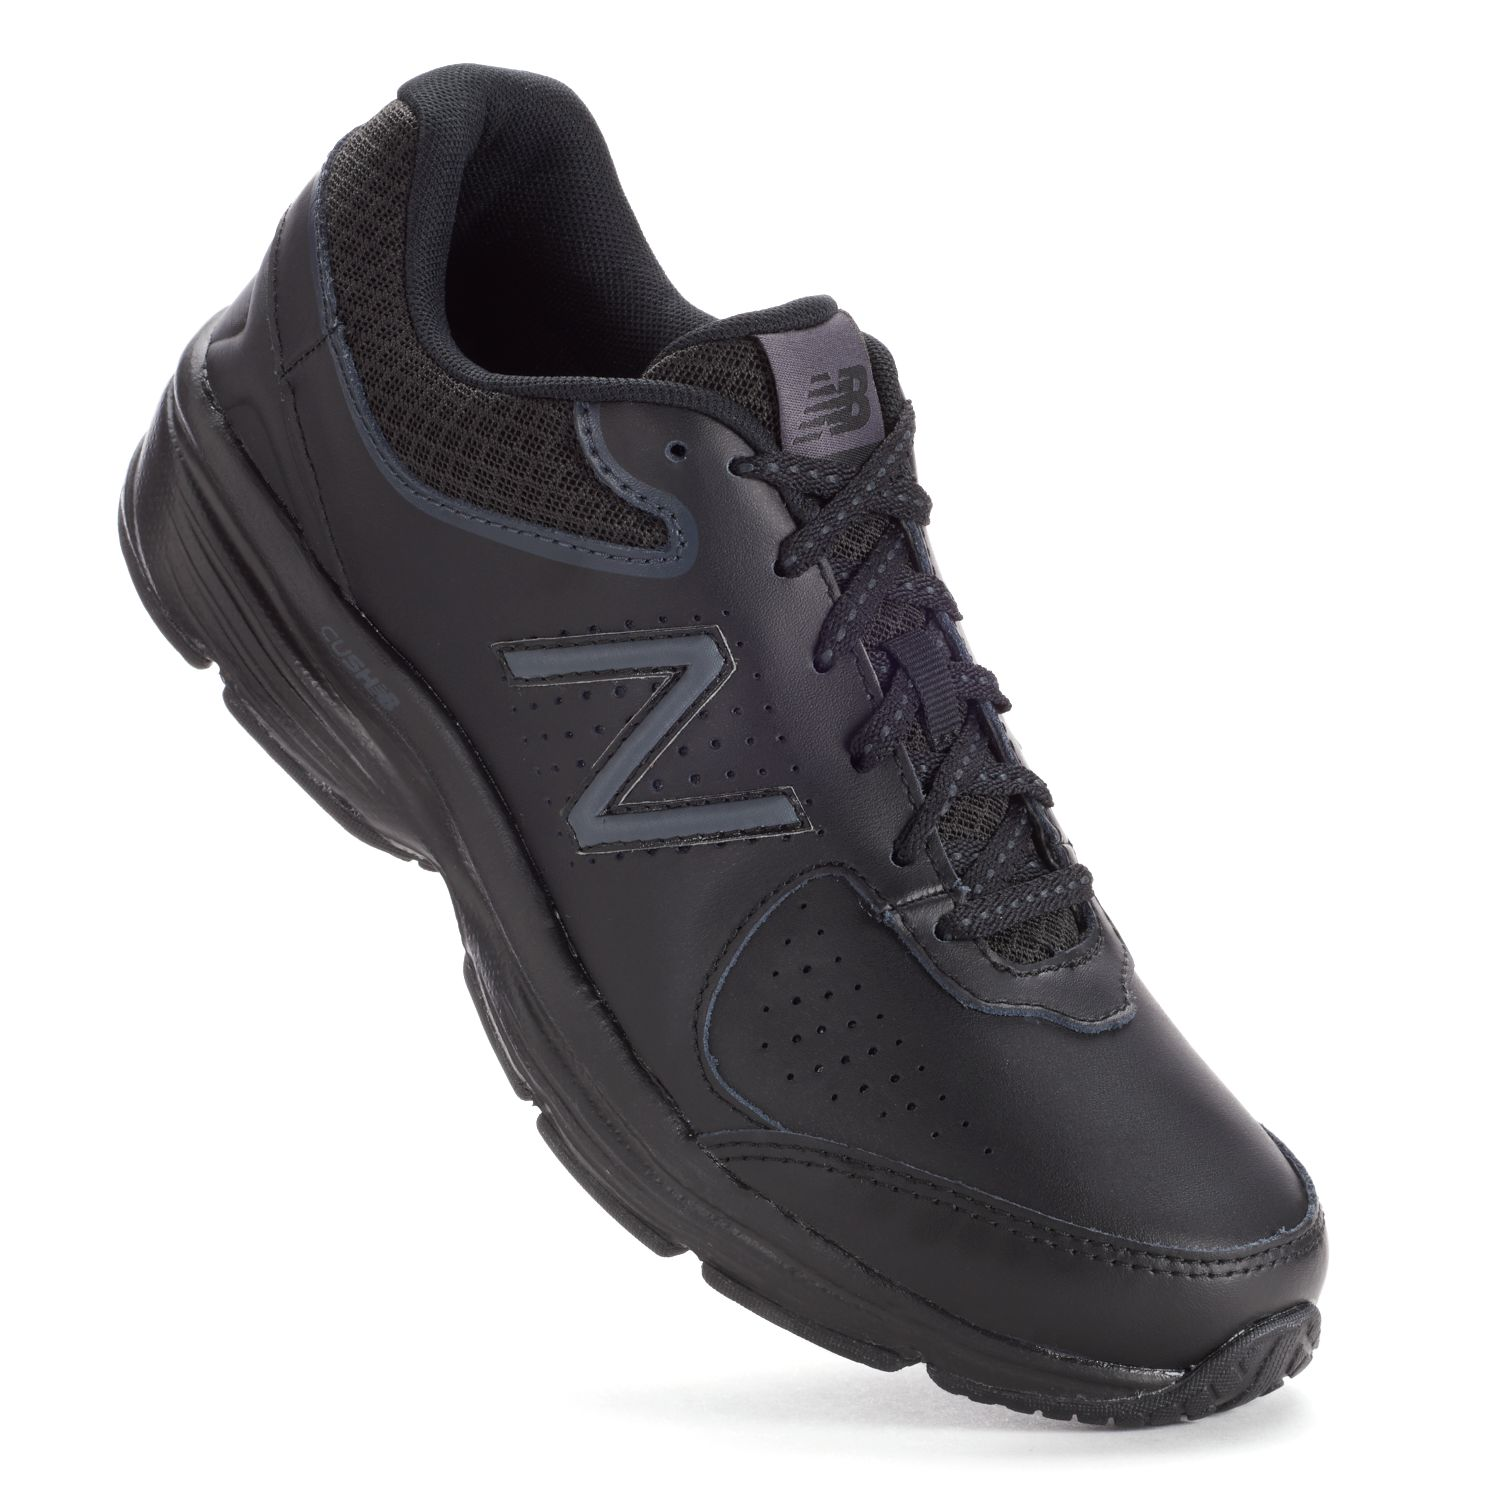 new balance women's ww927 walking shoe size 8